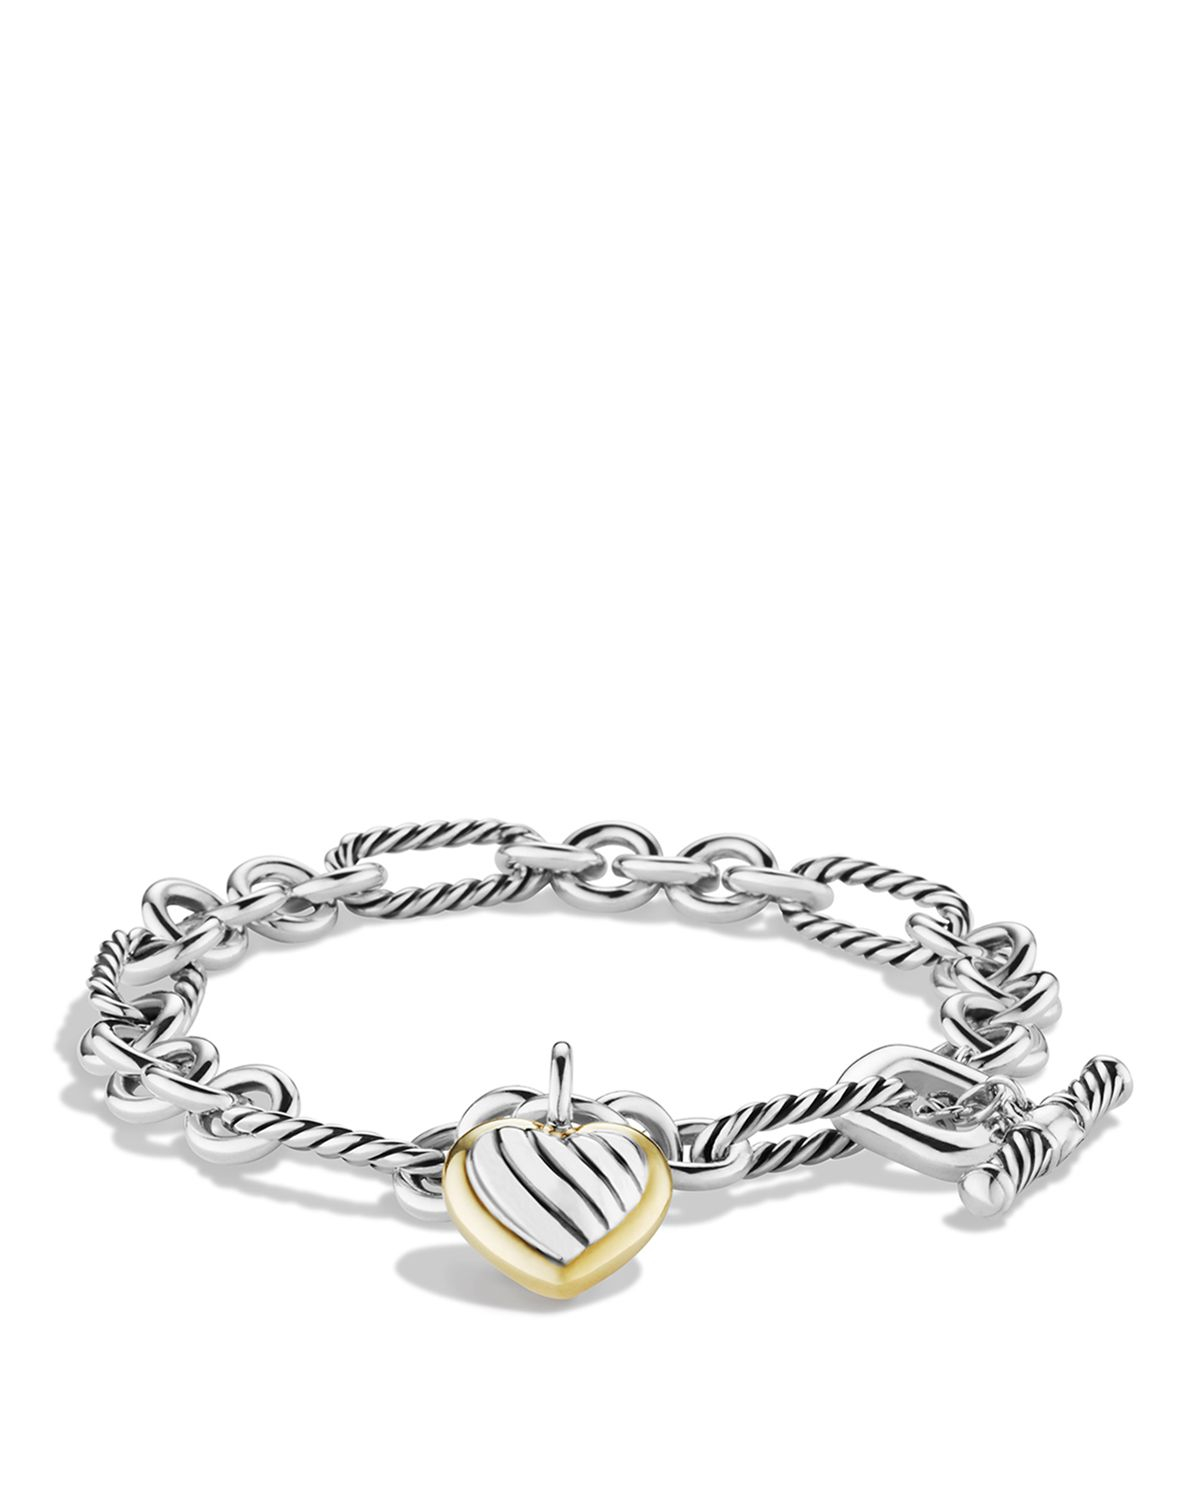 David Yurman Charm Bracelet: David Yurman Cable Heart Charm Bracelet With Gold In